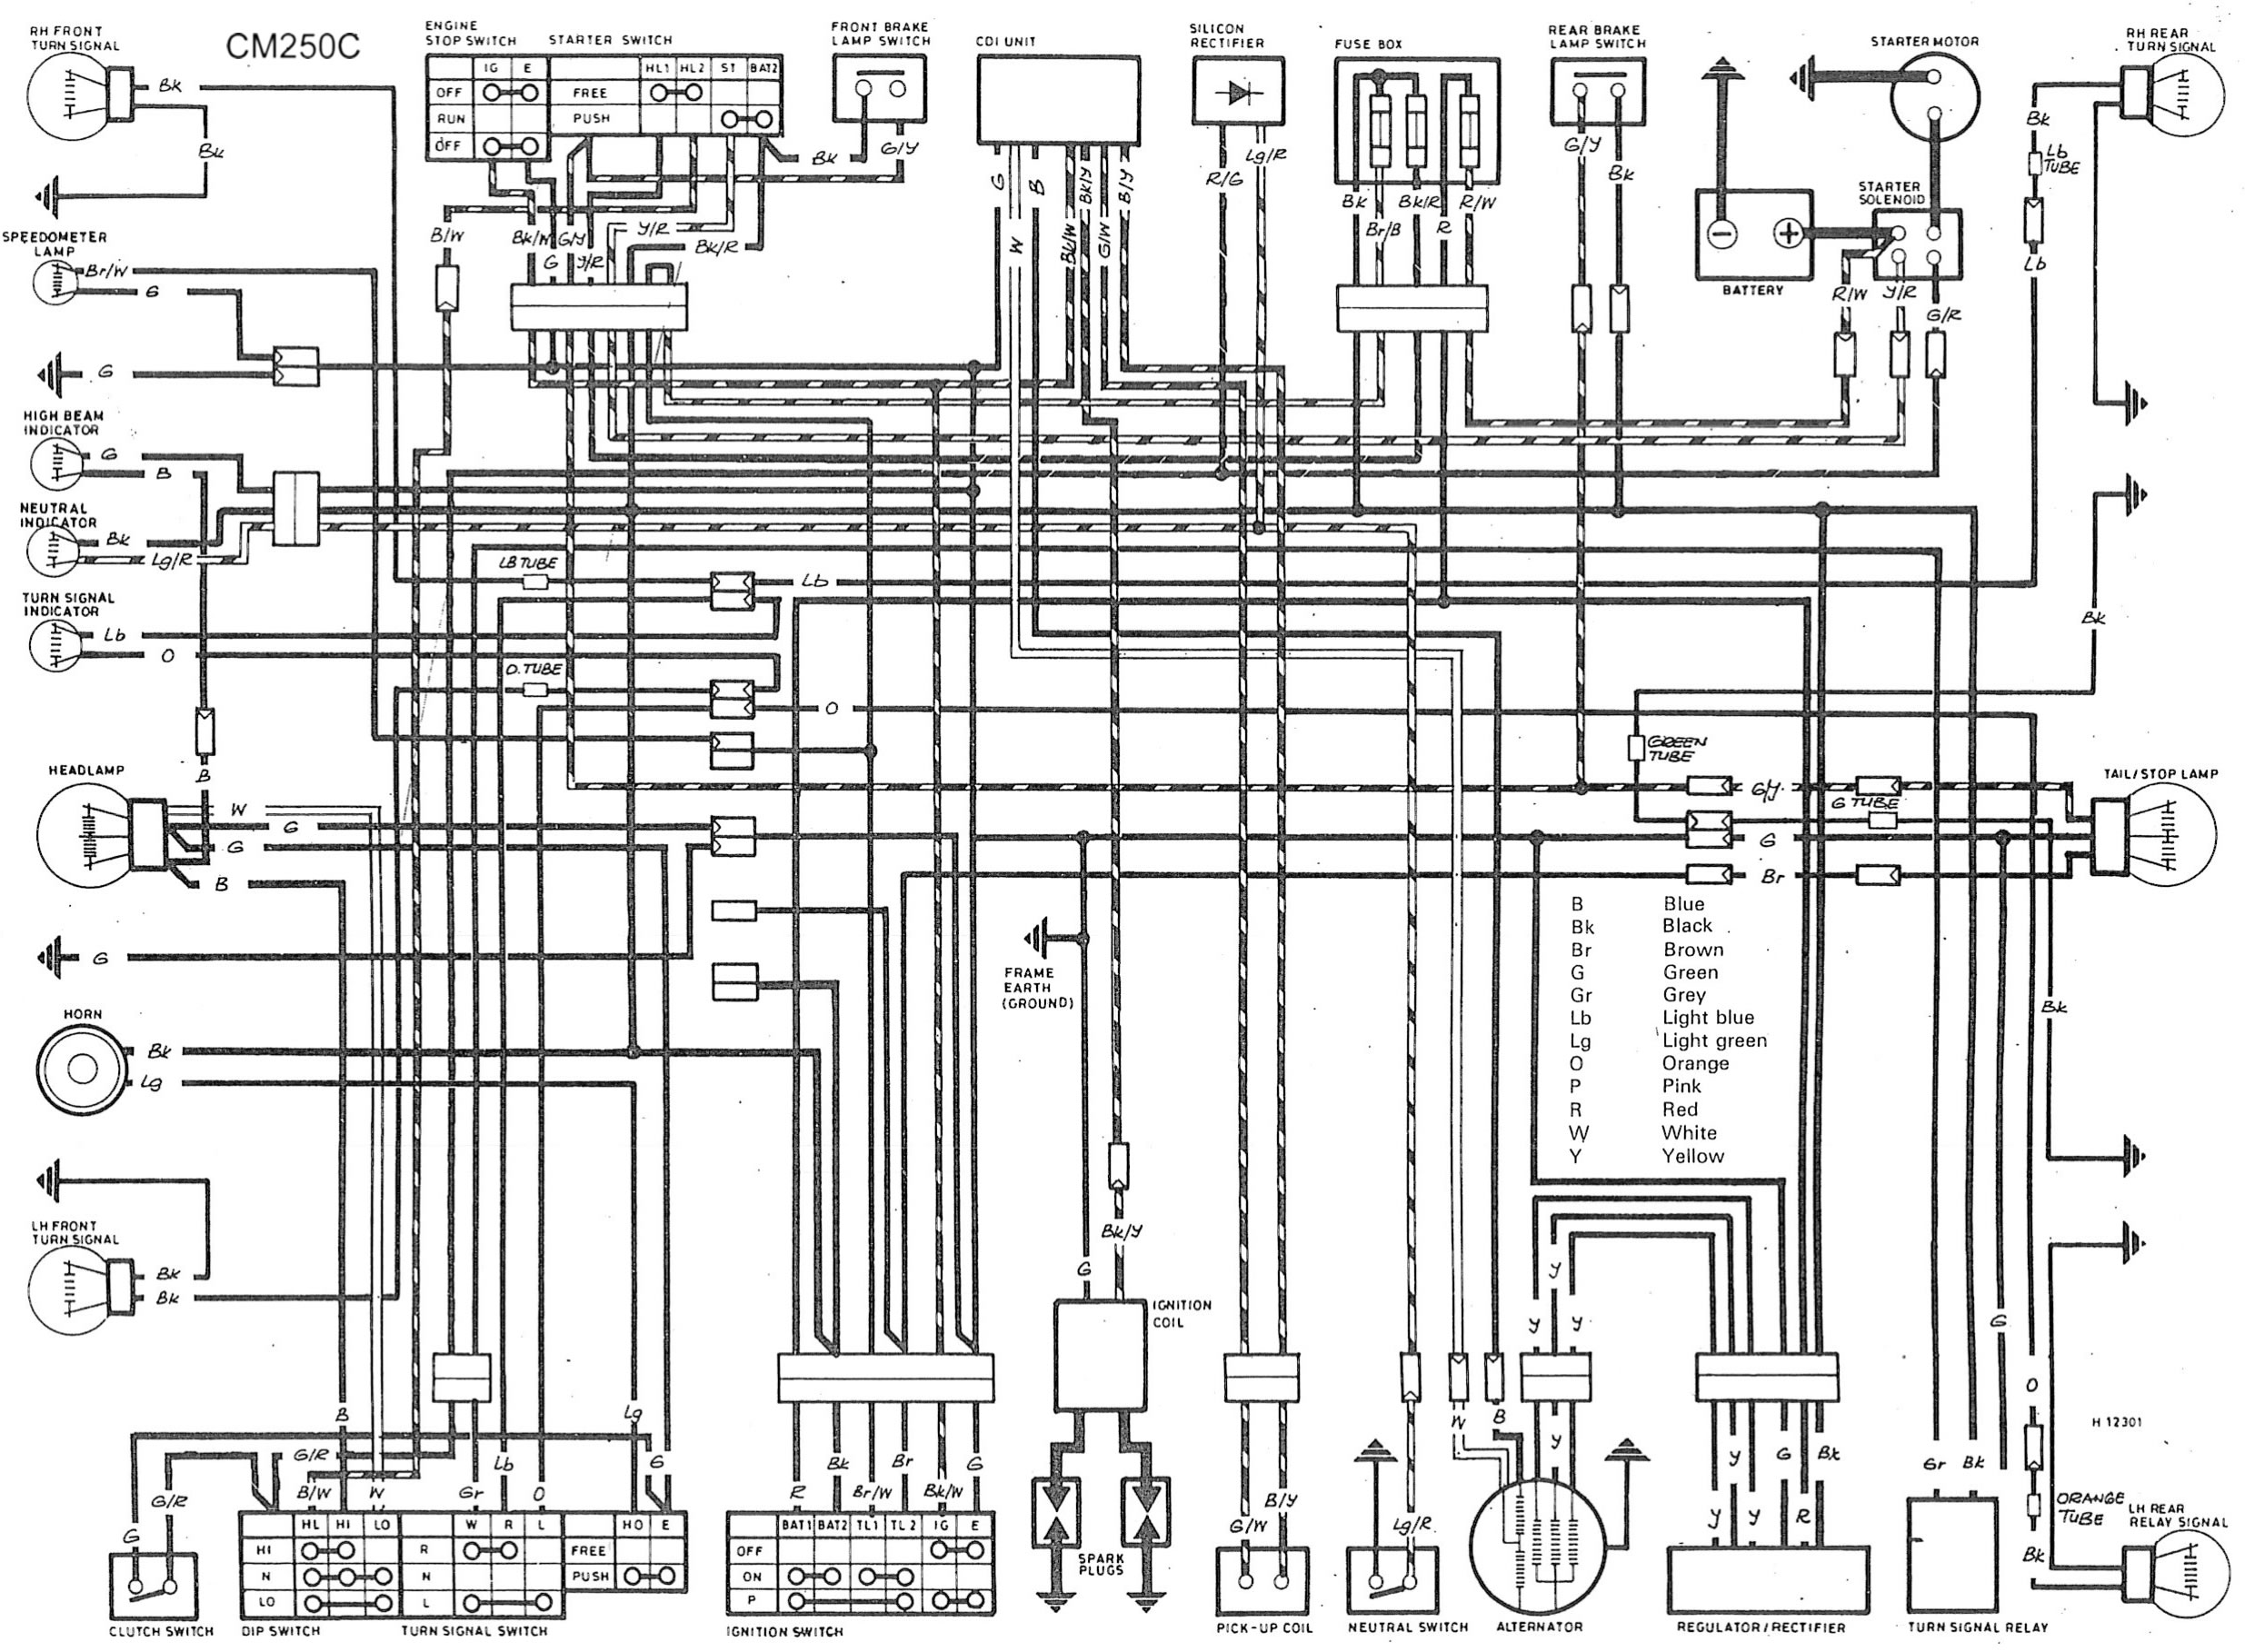 wirediagram honda cm 250 custom motorcycle (cm250c) 1984 honda big red 200es wiring diagram at sewacar.co